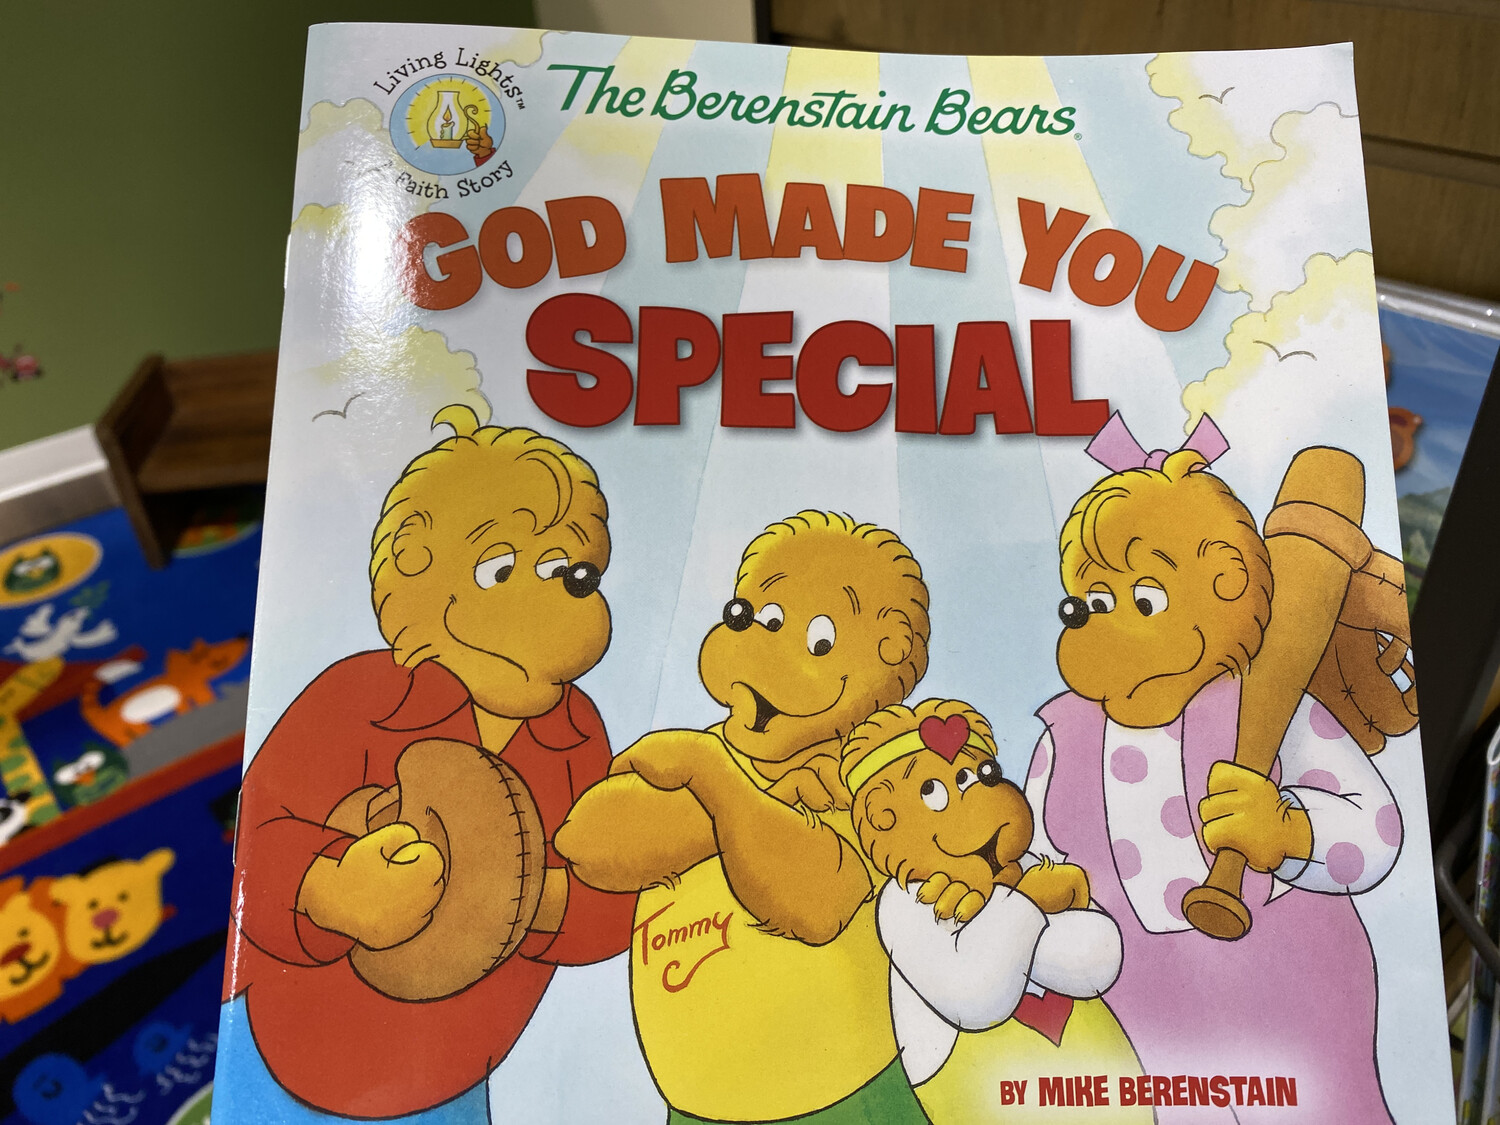 BERENSTAIN, The Berenstain Bears God Made You Special